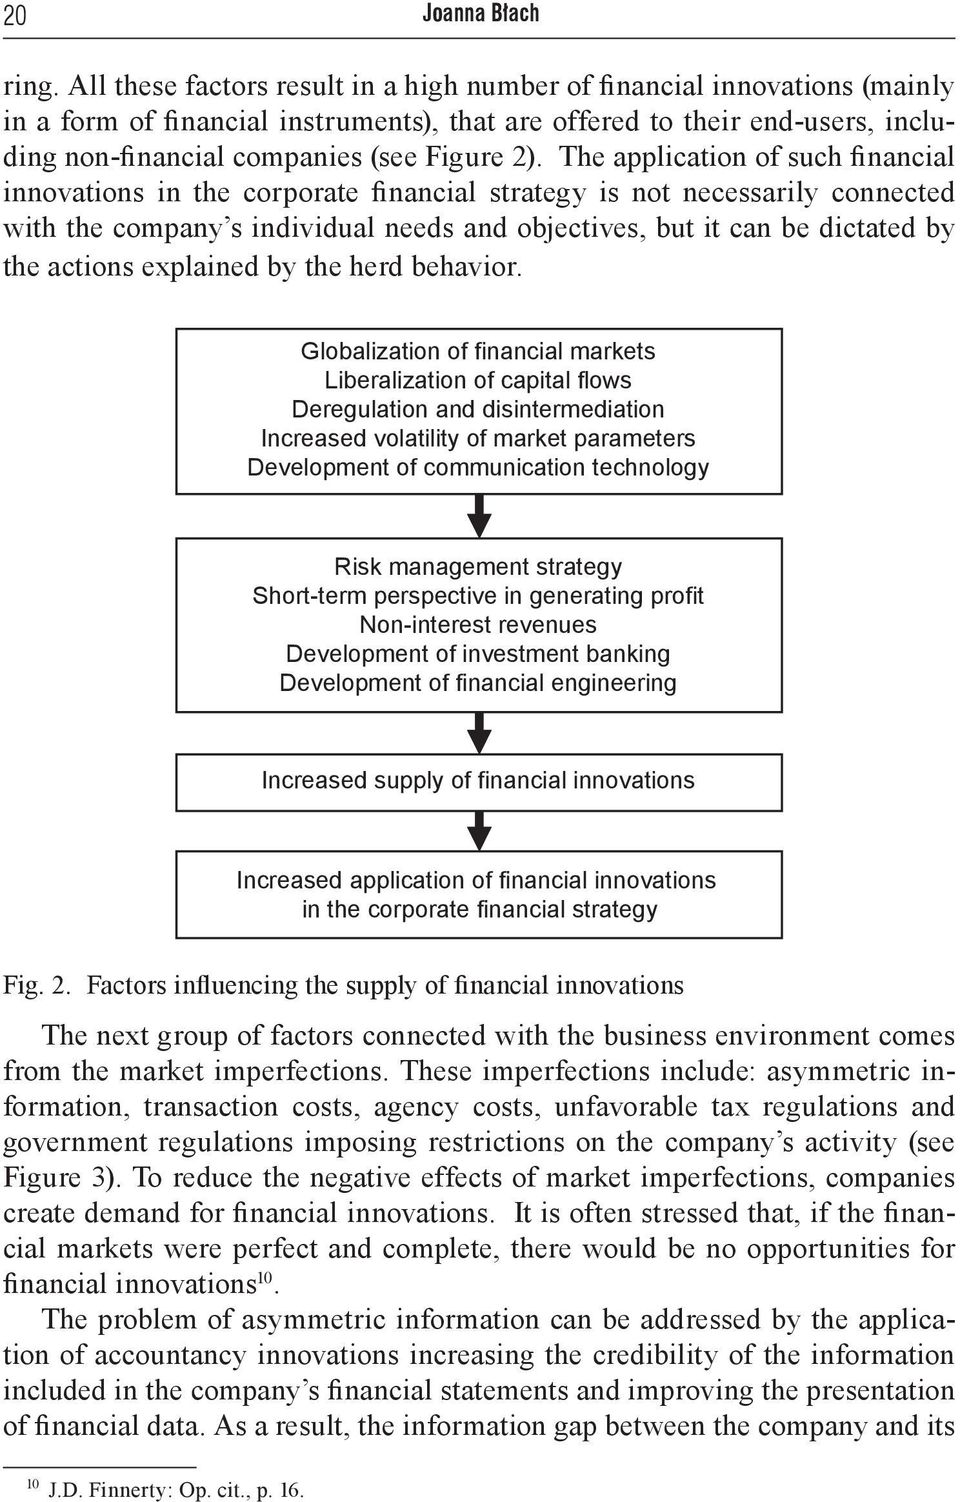 The application of such financial innovations in the corporate financial strategy is not necessarily connected with the company s individual needs and objectives, but it can be dictated by the